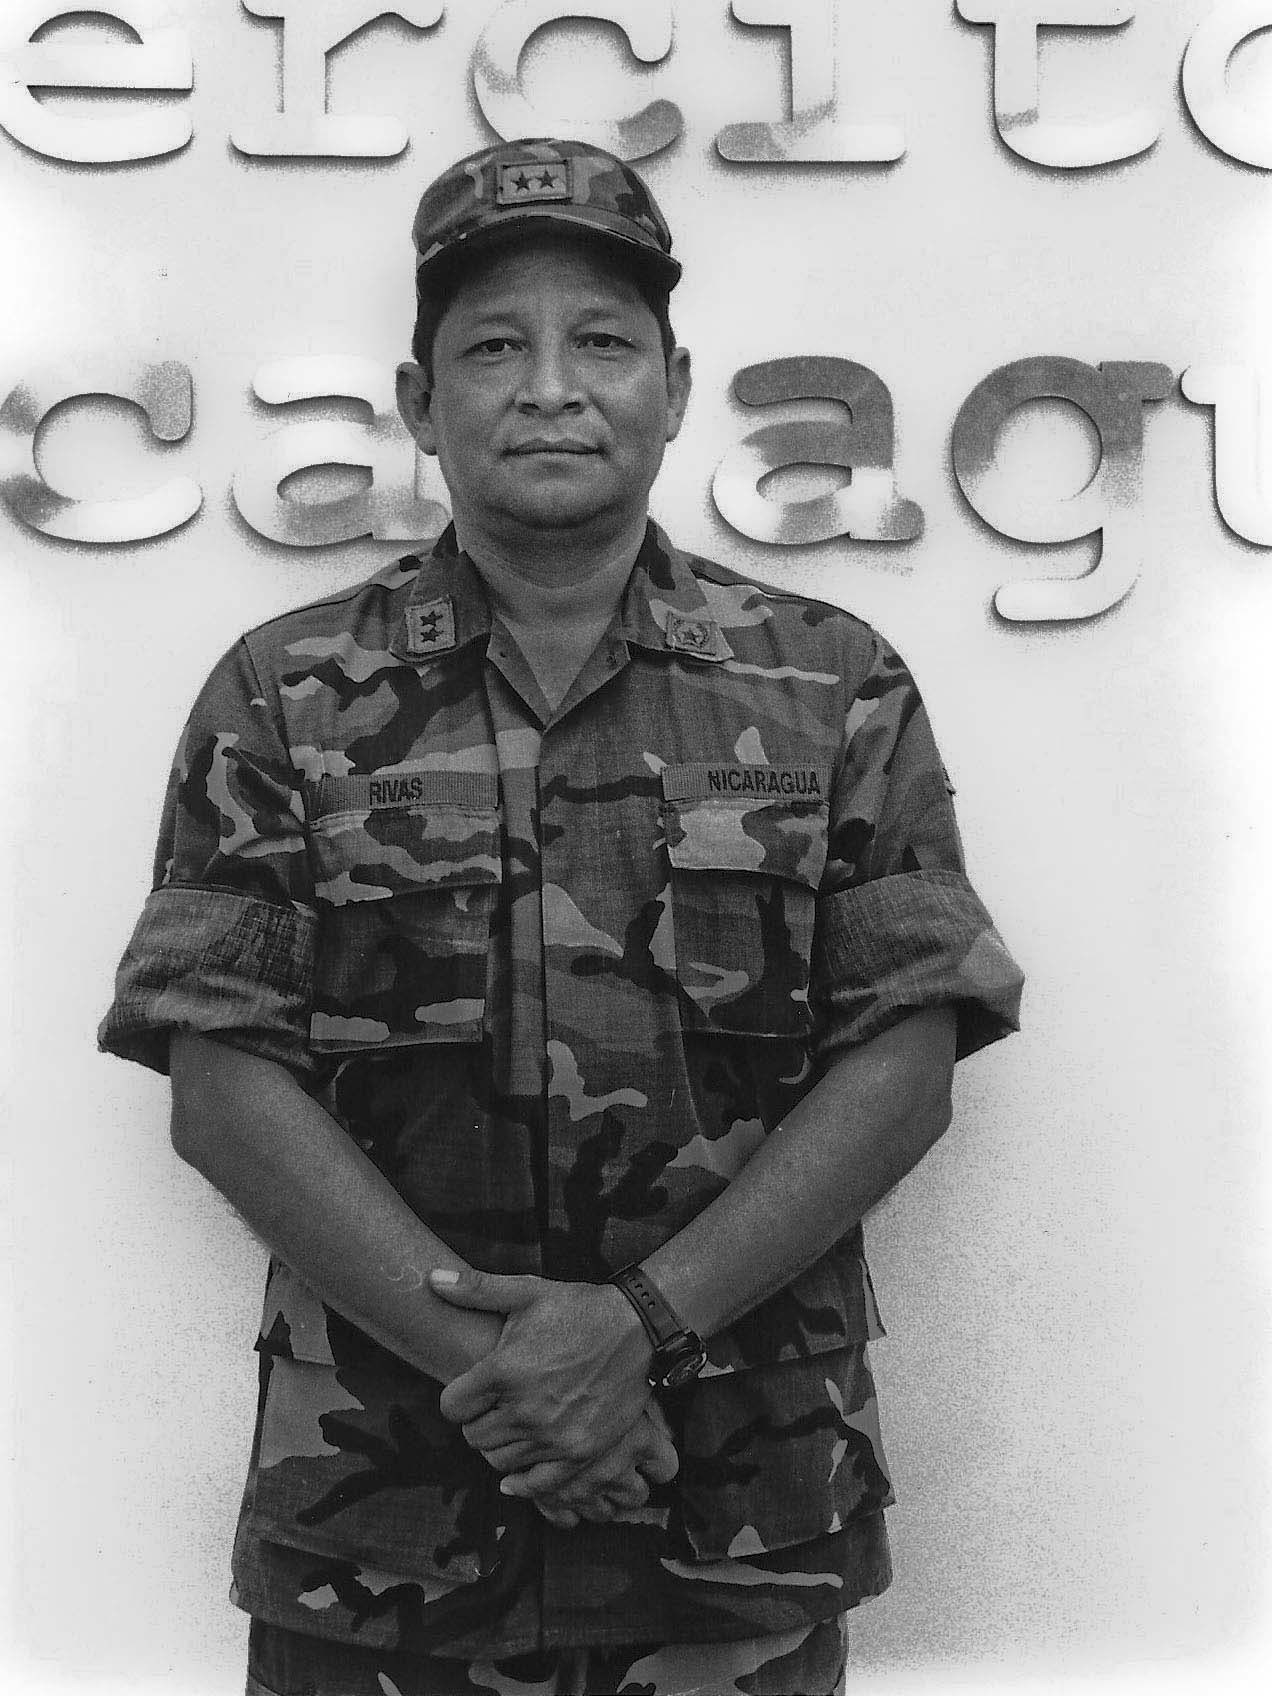 ejercito.jpg